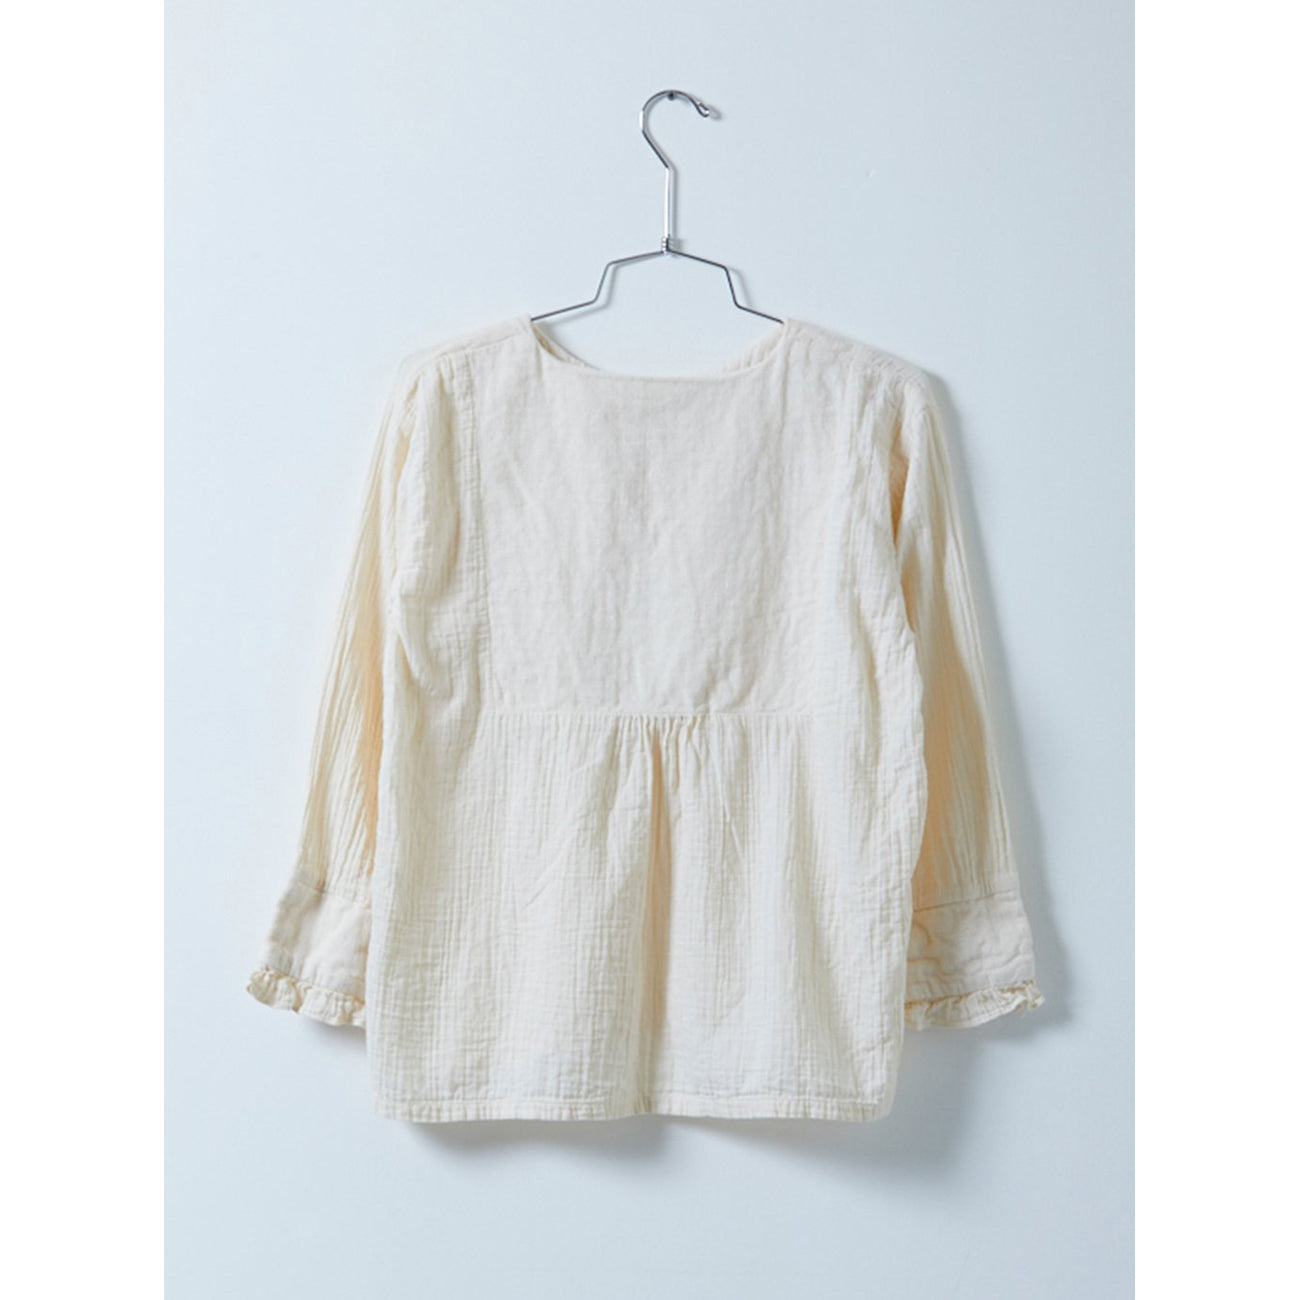 Atelier Delphine Meadow Top in Kinari